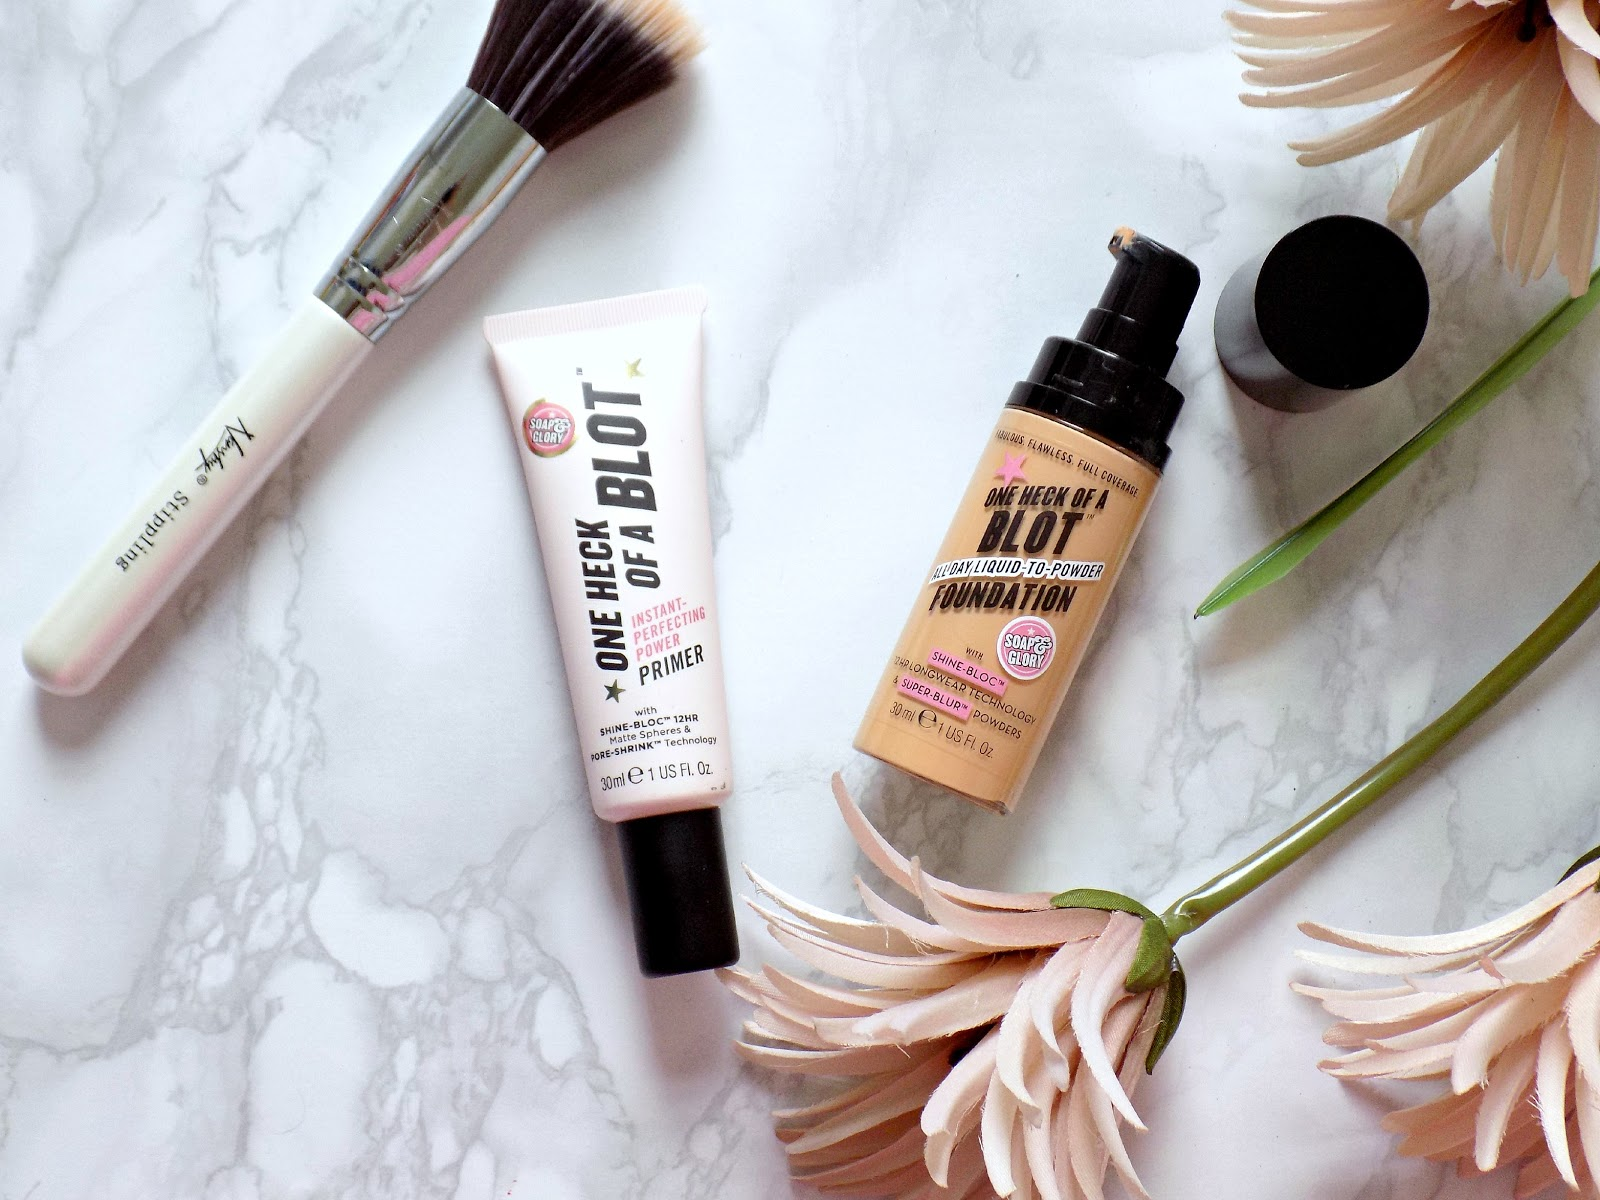 Soap & Glory One Heck of a Blot primer and foundation